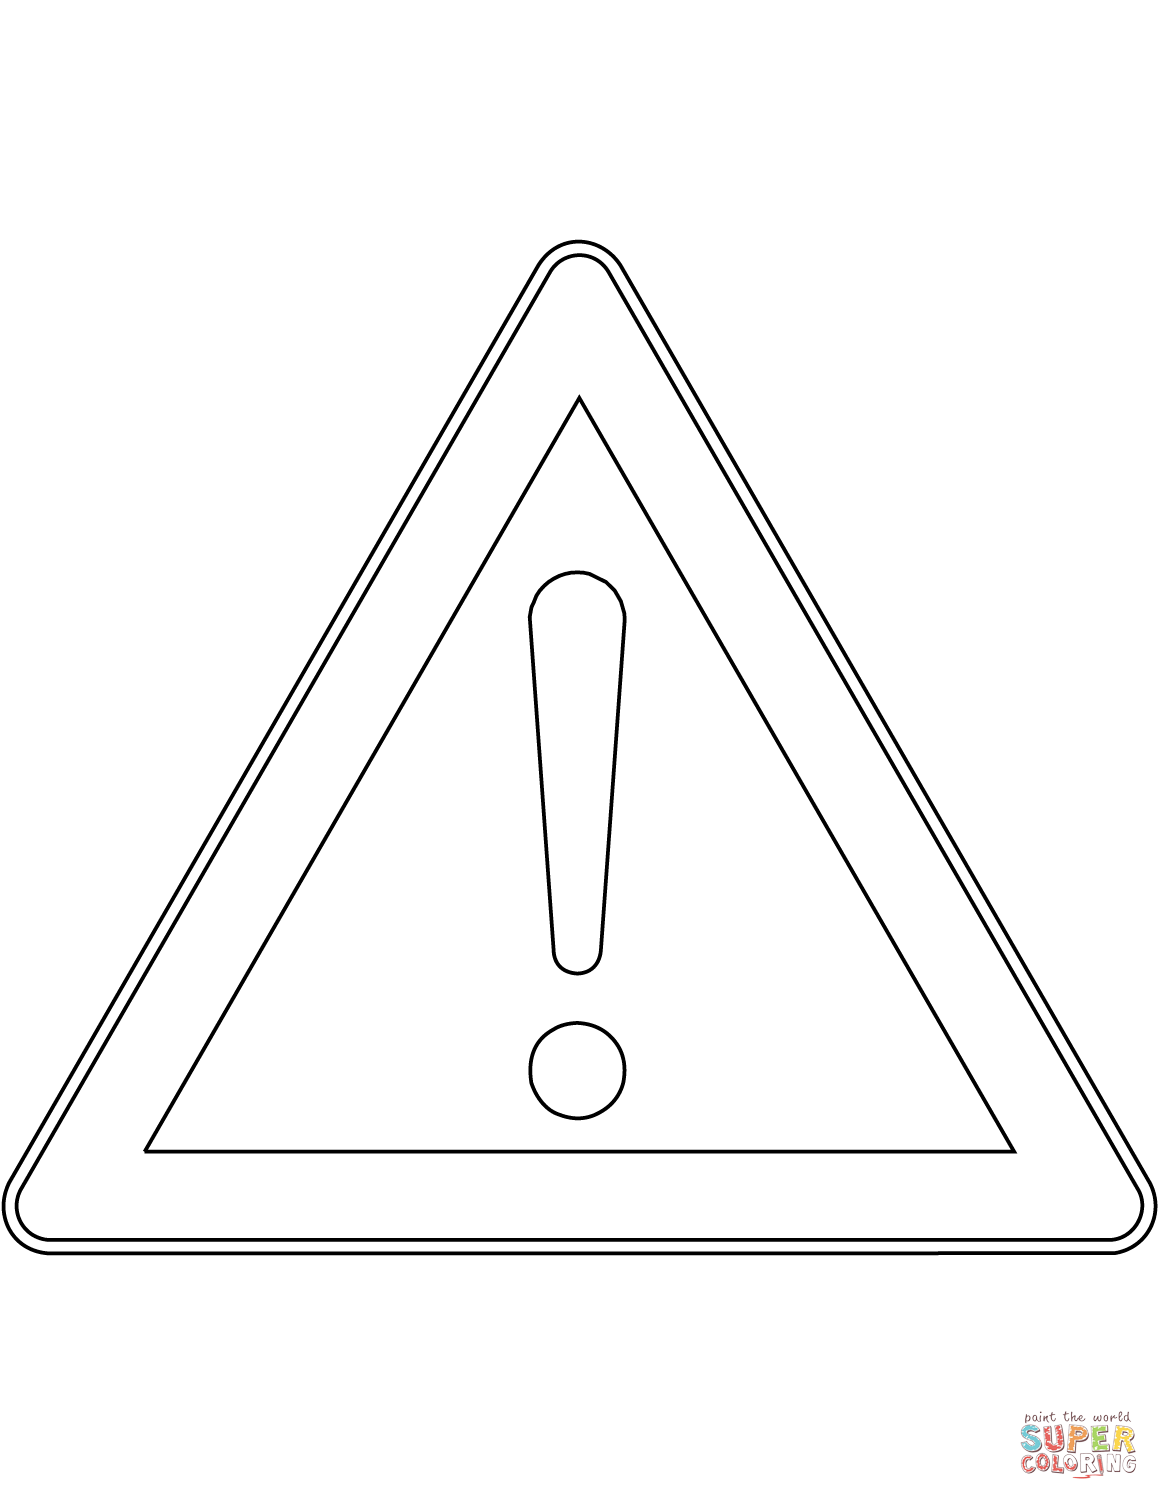 danger sign coloring page quotother dangerquot sign in sweden coloring page free page coloring danger sign